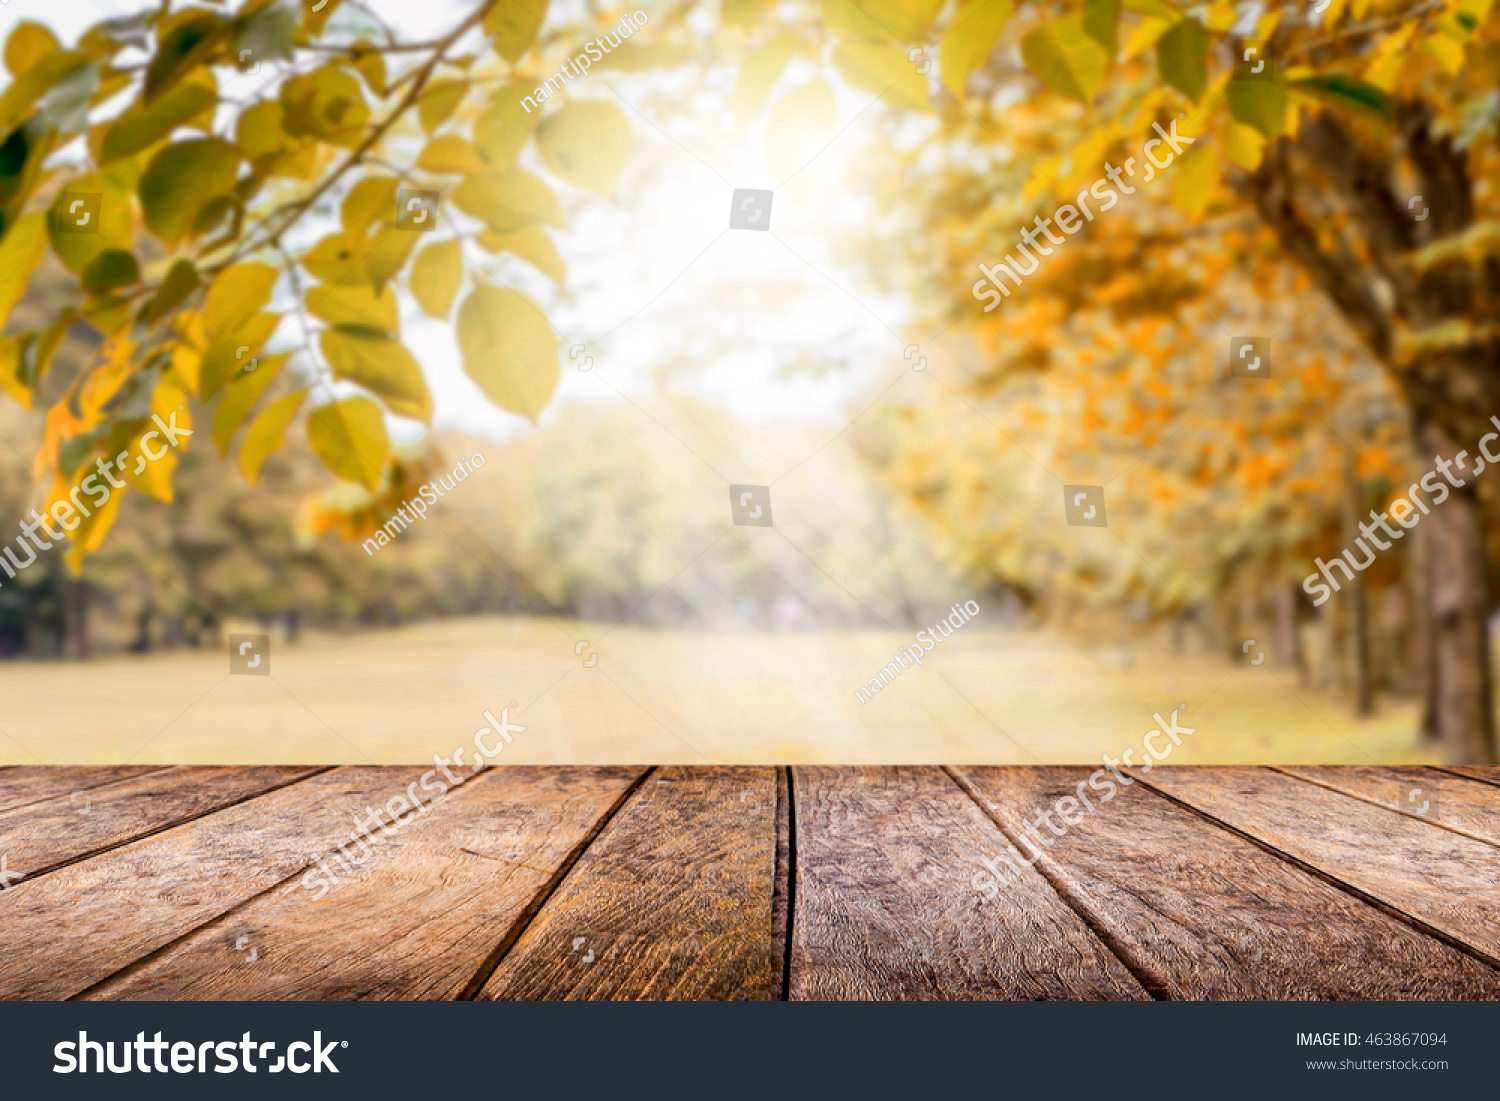 Fall Wallpaper Online Image Amp Photo Editor Shutterstock Editor